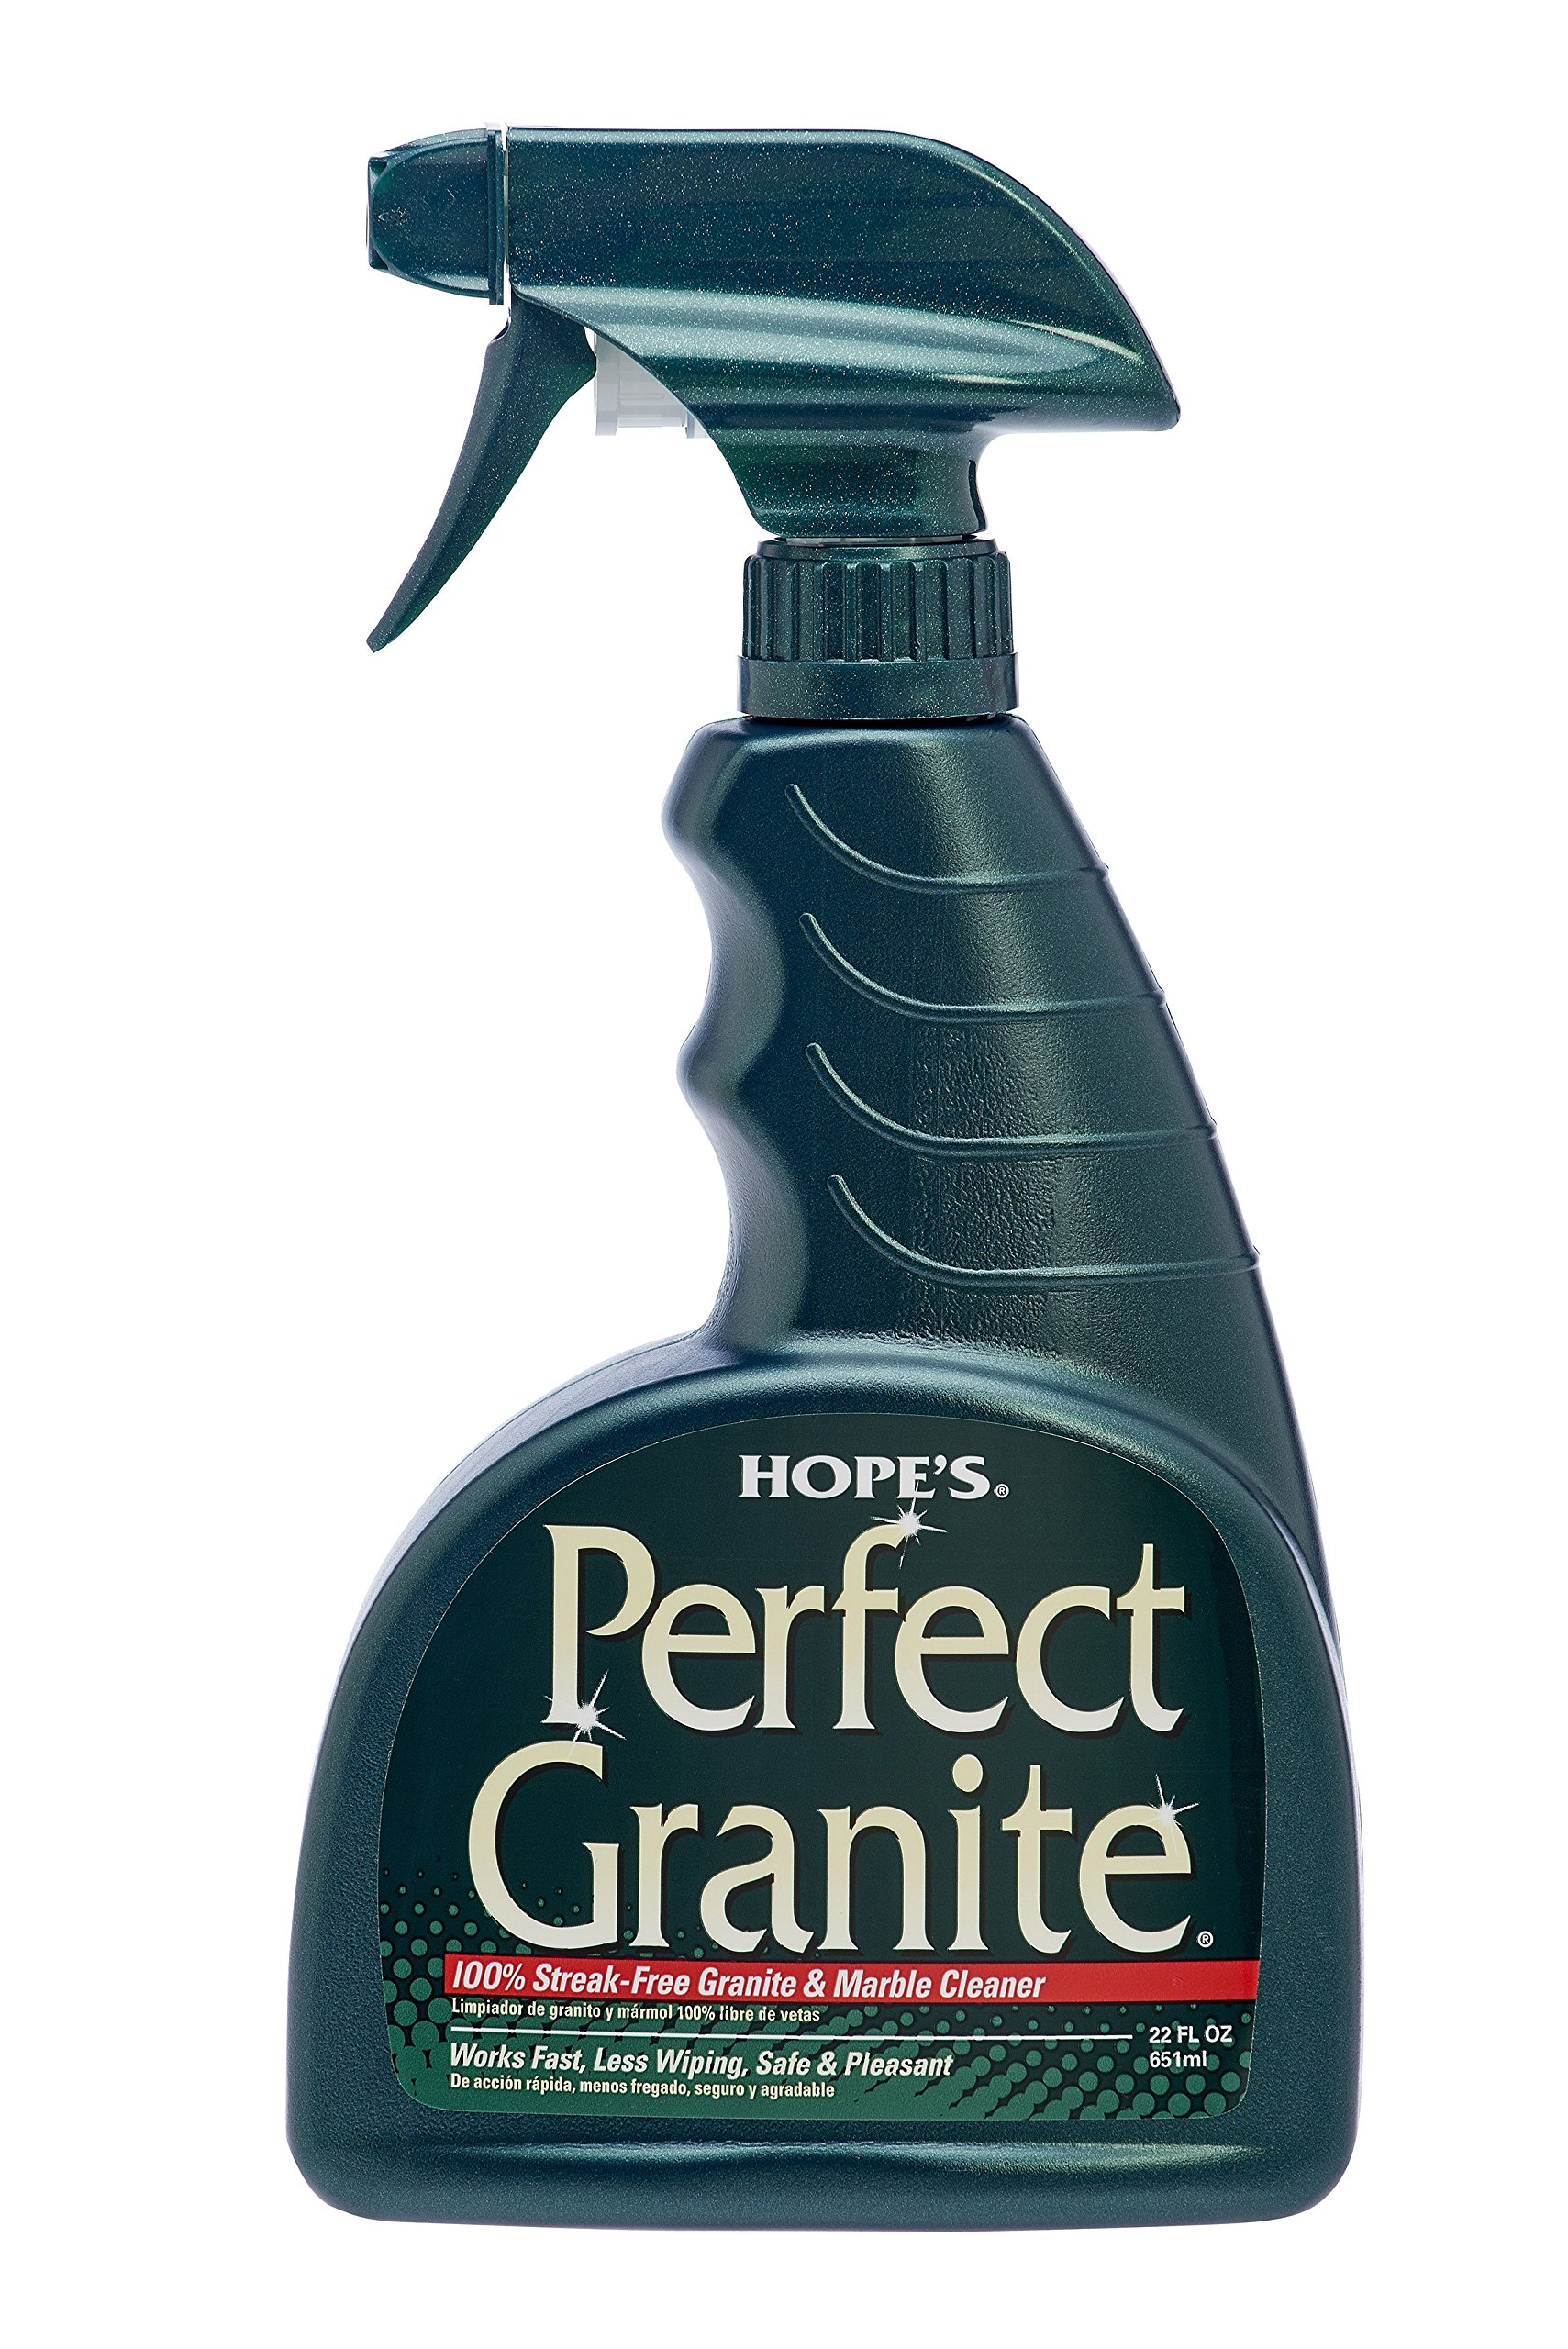 HOPE'S Perfect Granite Cleaner, 22-Ounce, Case of 6